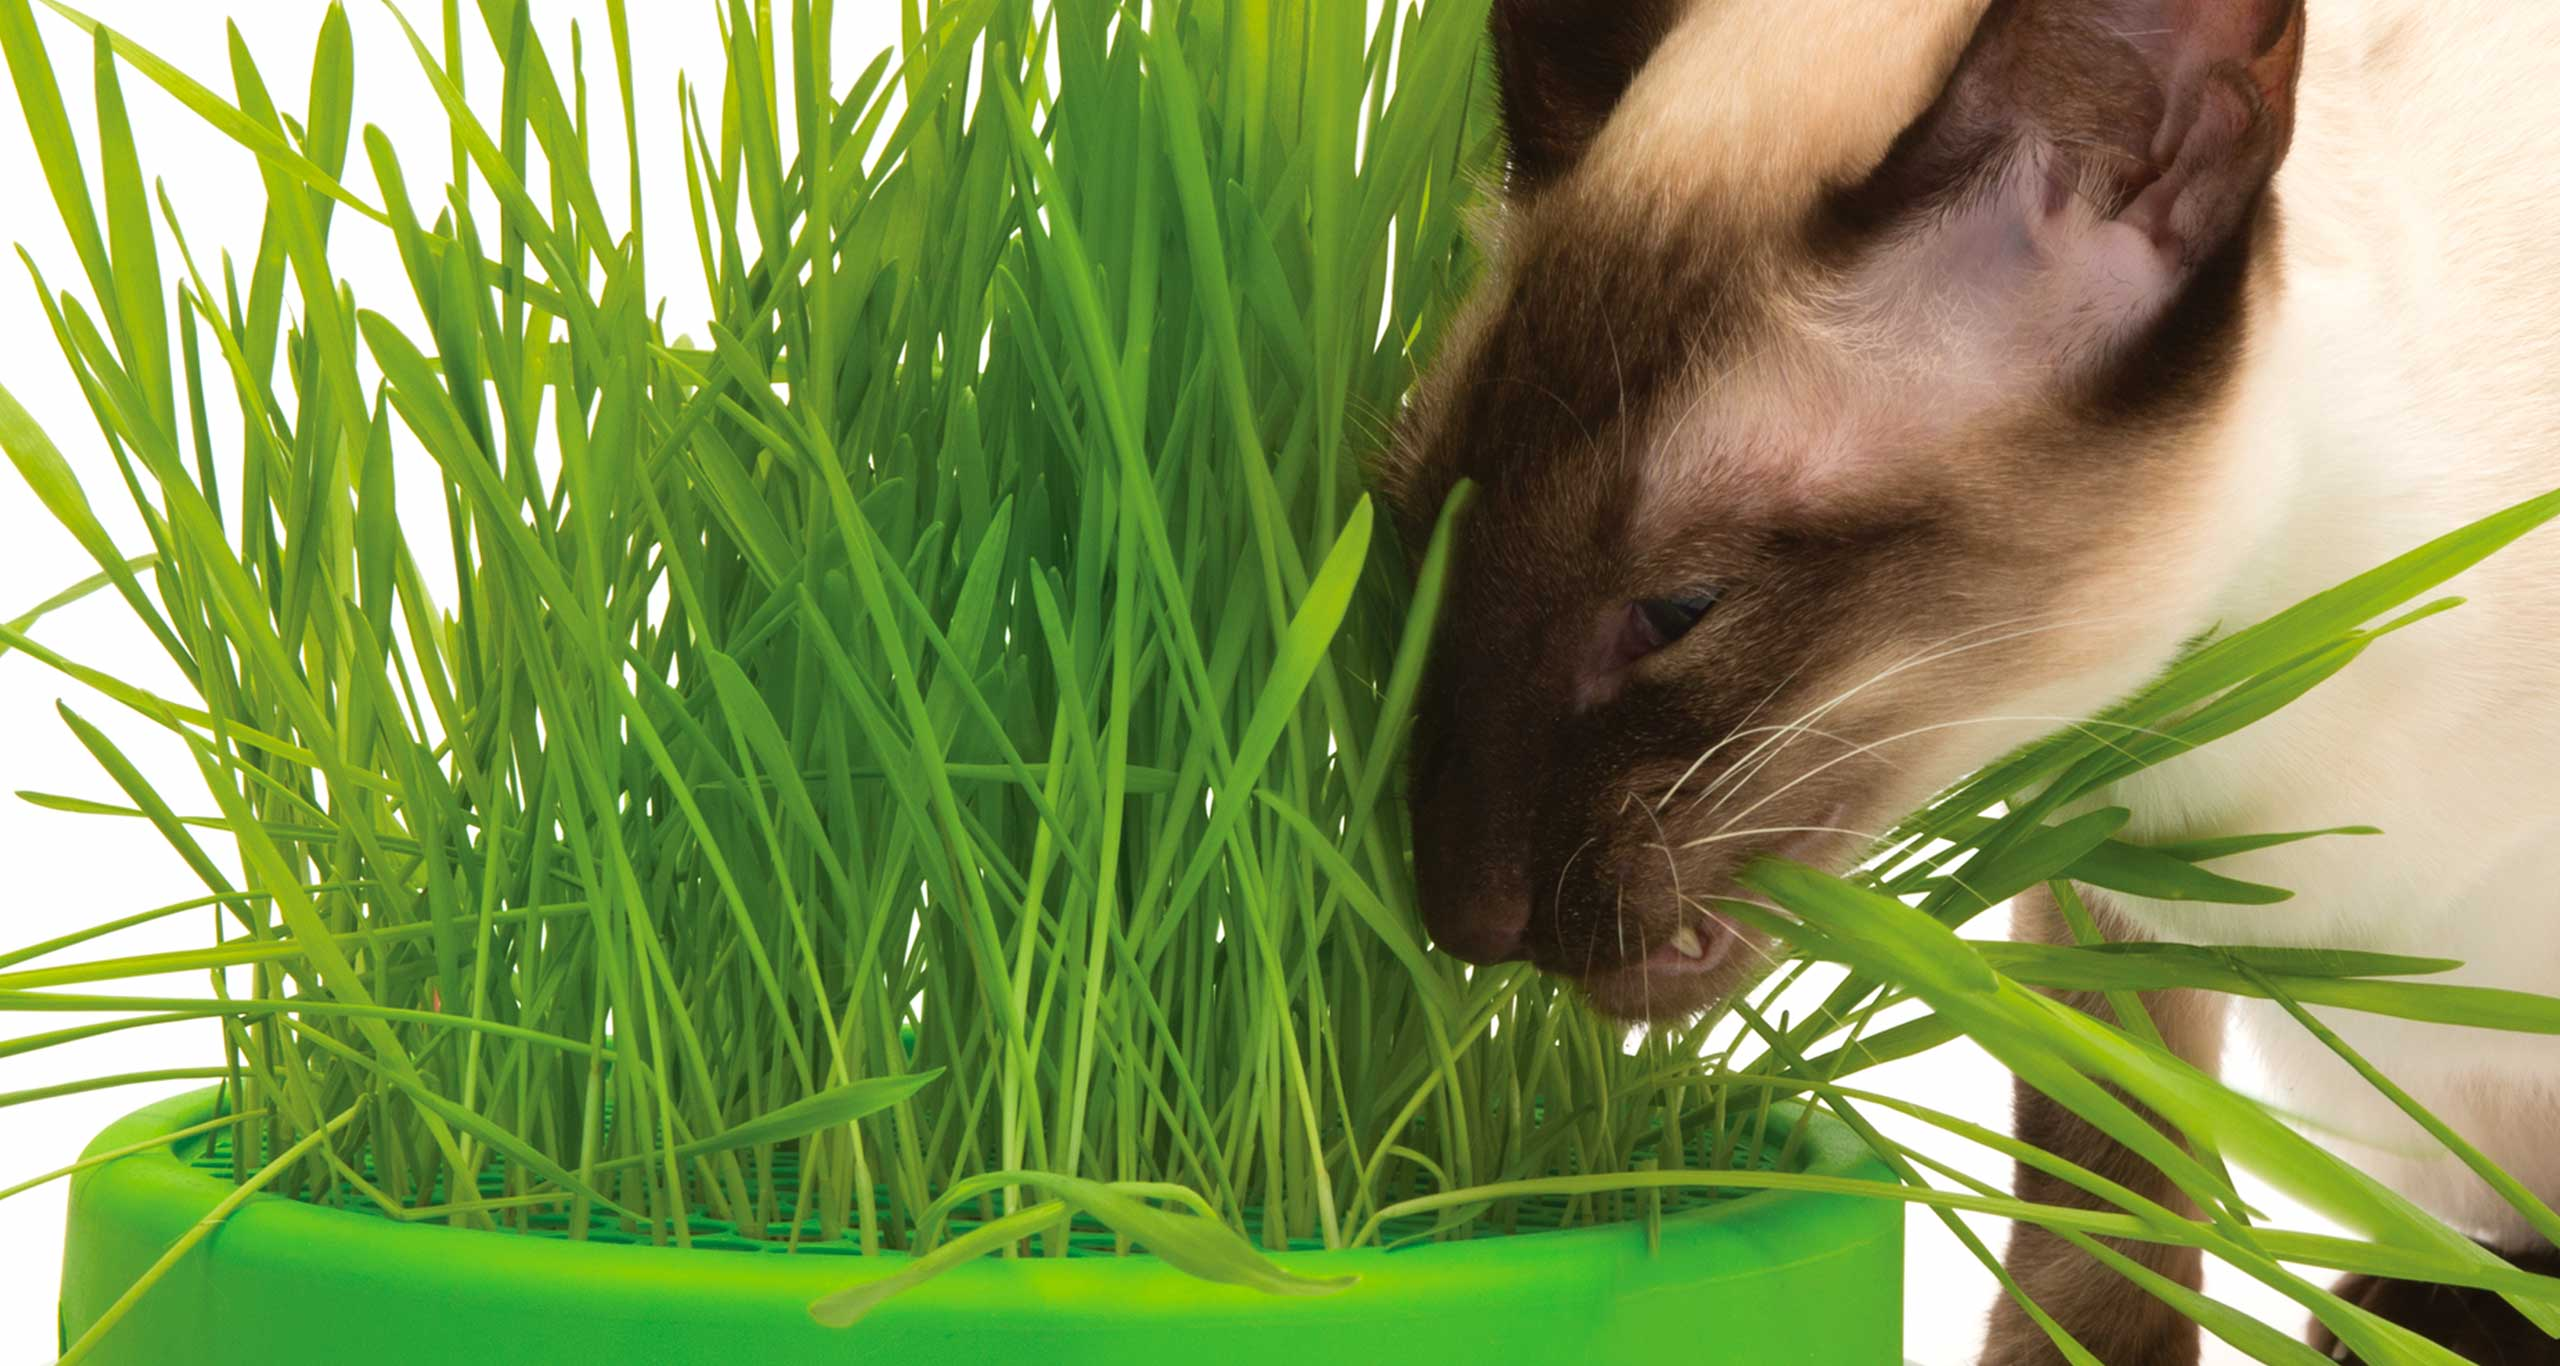 Cat eating from grass